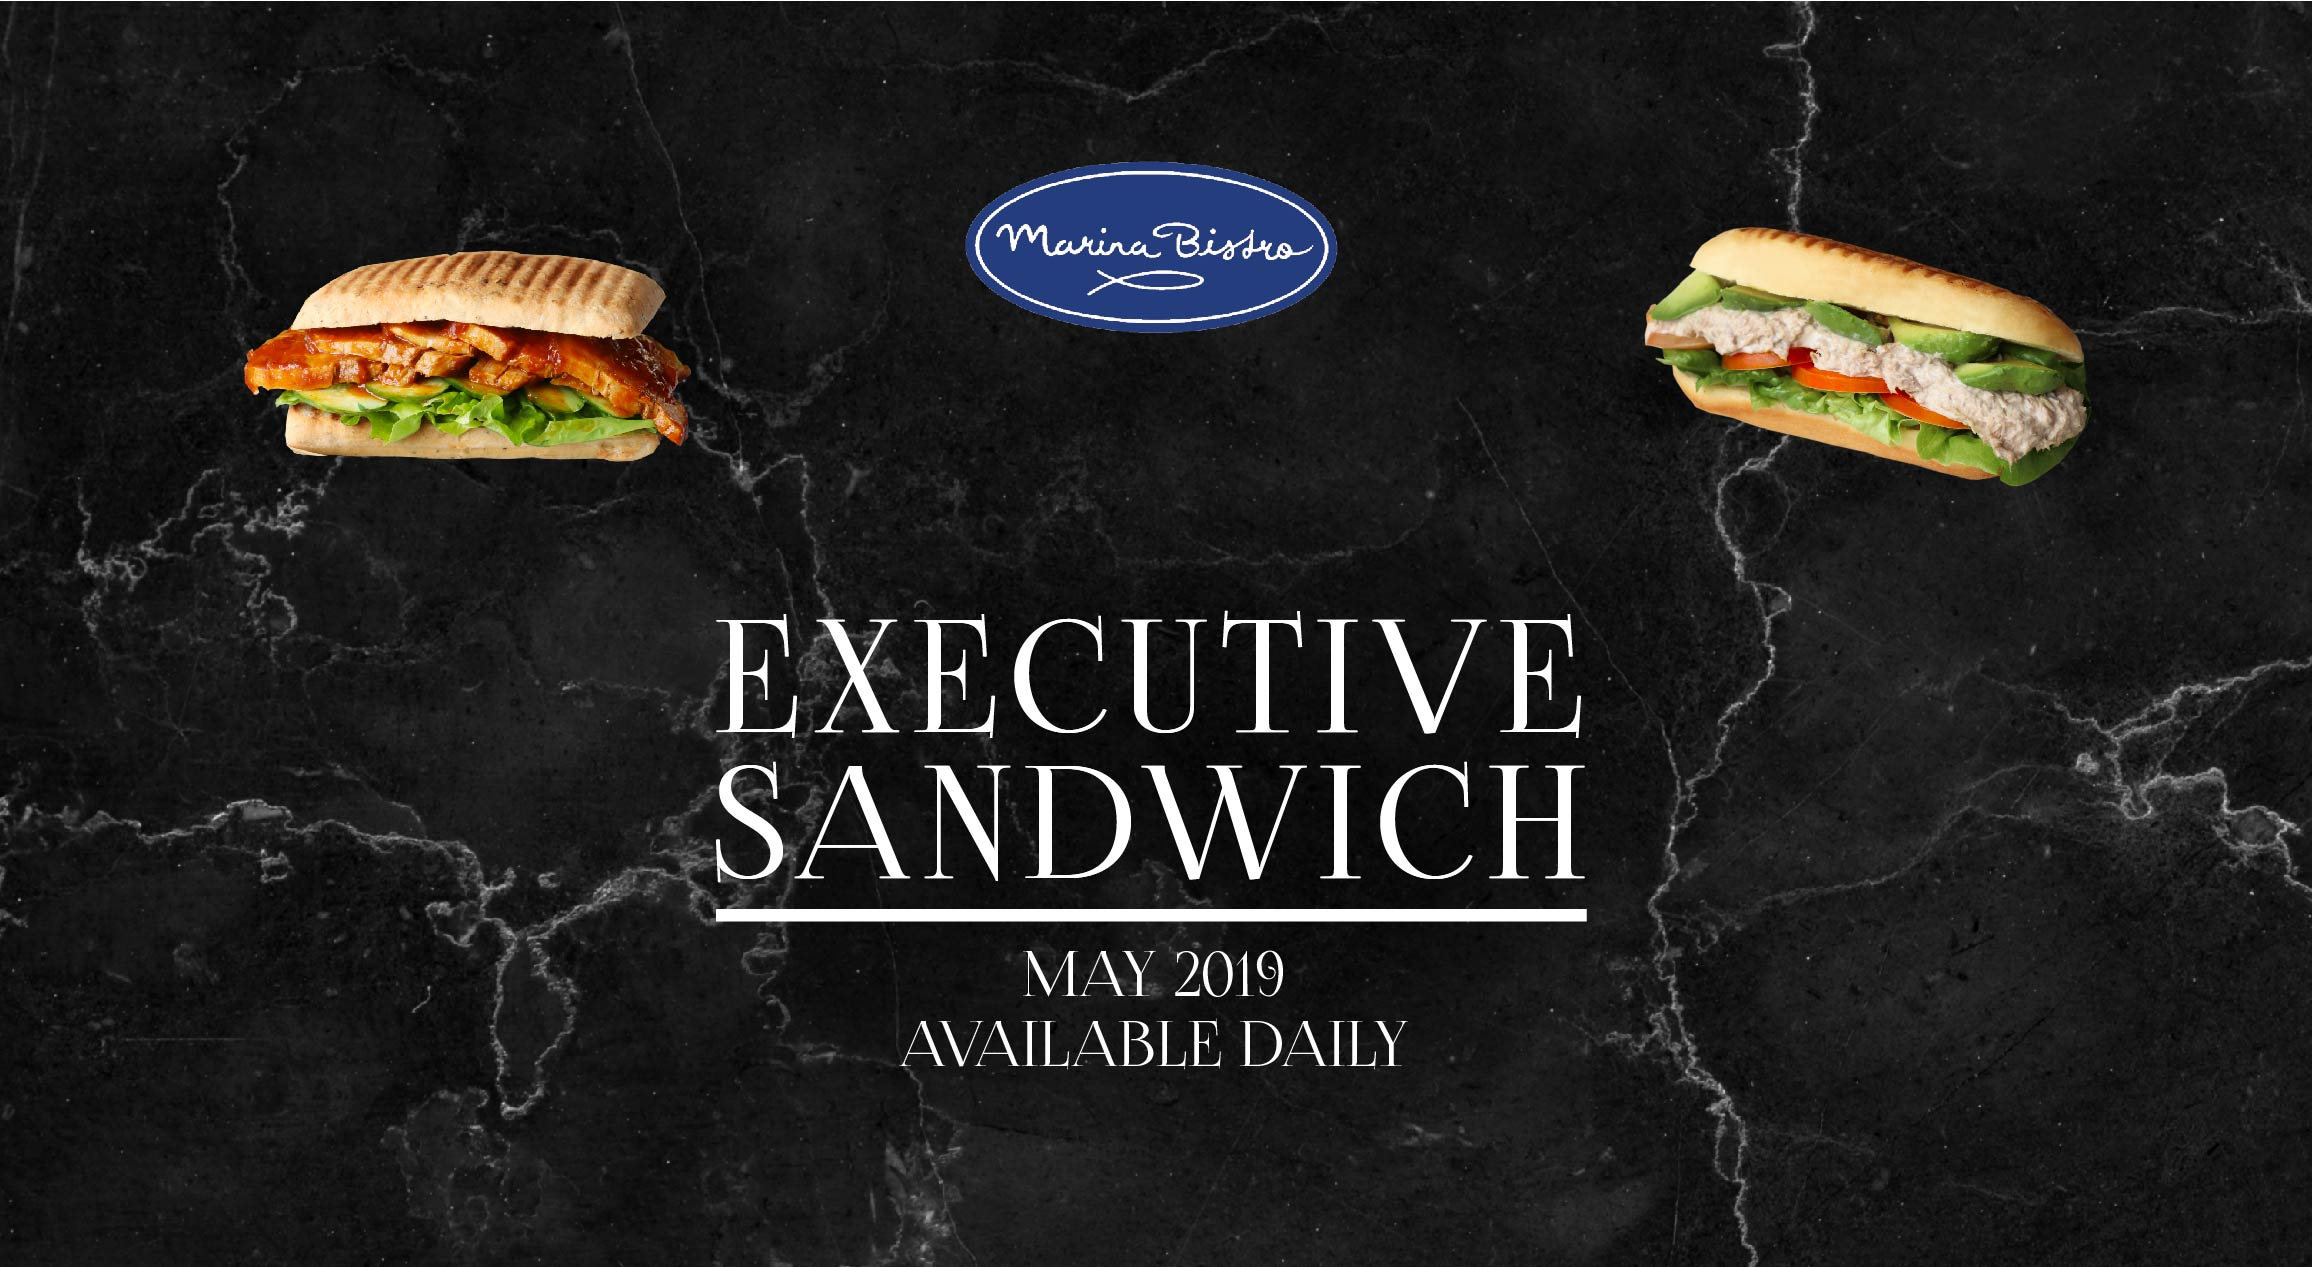 Executive Sandwich, May